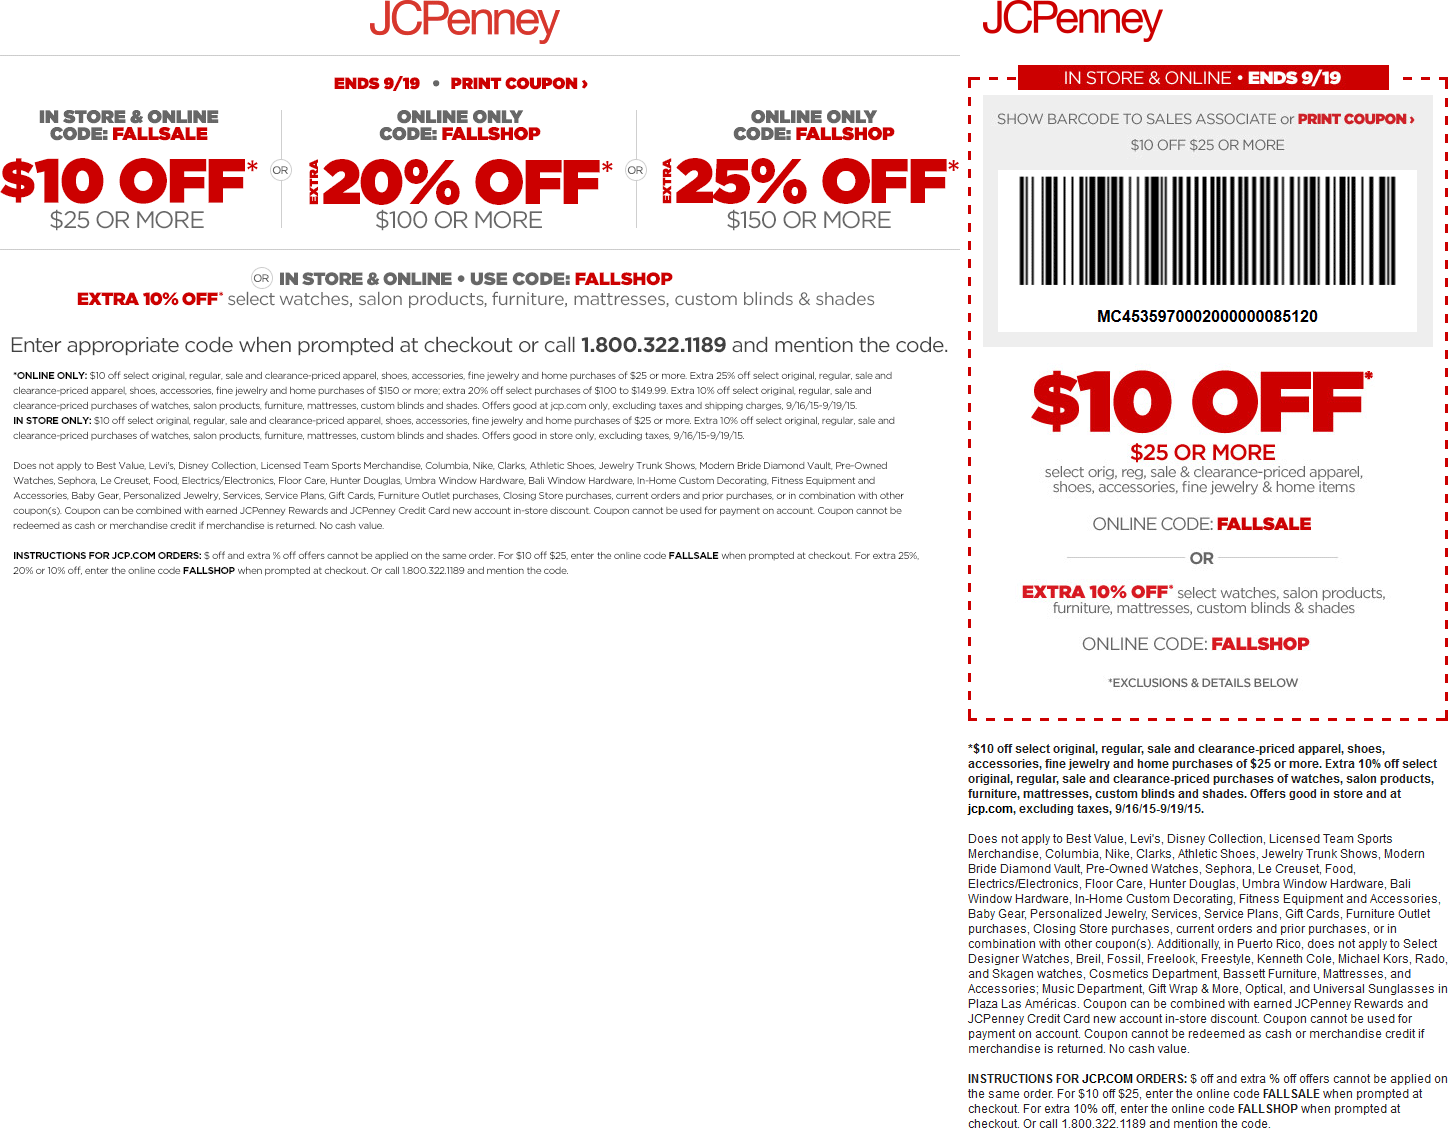 JCPenney Coupon February 2017 $10 off $25 & more at JCPenney, or online via promo code FALLSALE